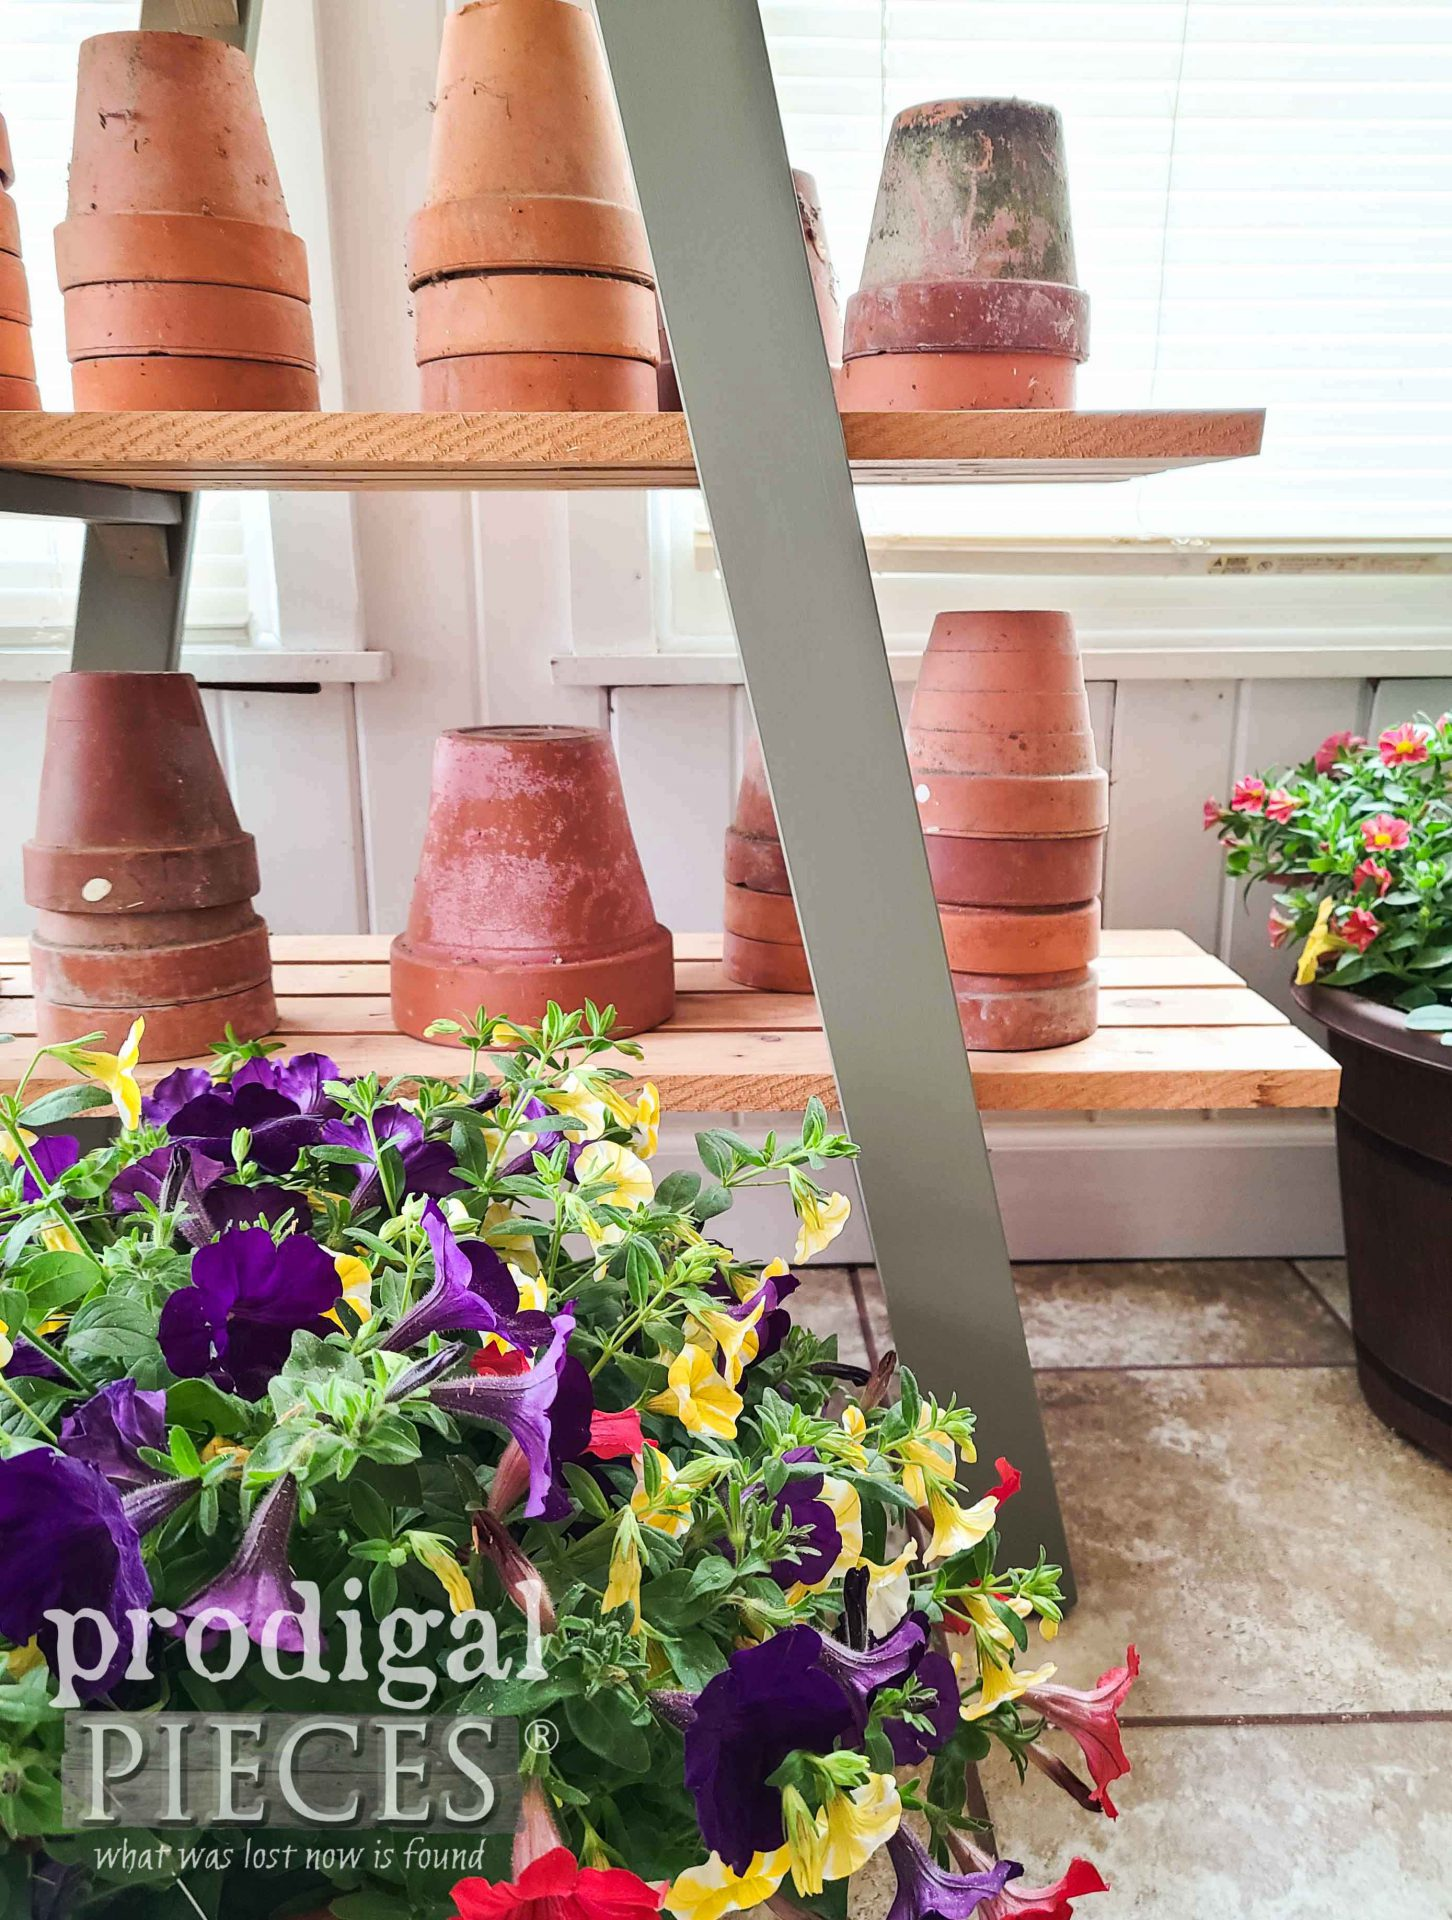 Garden Style Decor from Upcycled Bunk Bed Ladders by Larissa of Prodigal Pieces | prodigalpieces.com #prodigalpieces #garden #diy #home #homedecor